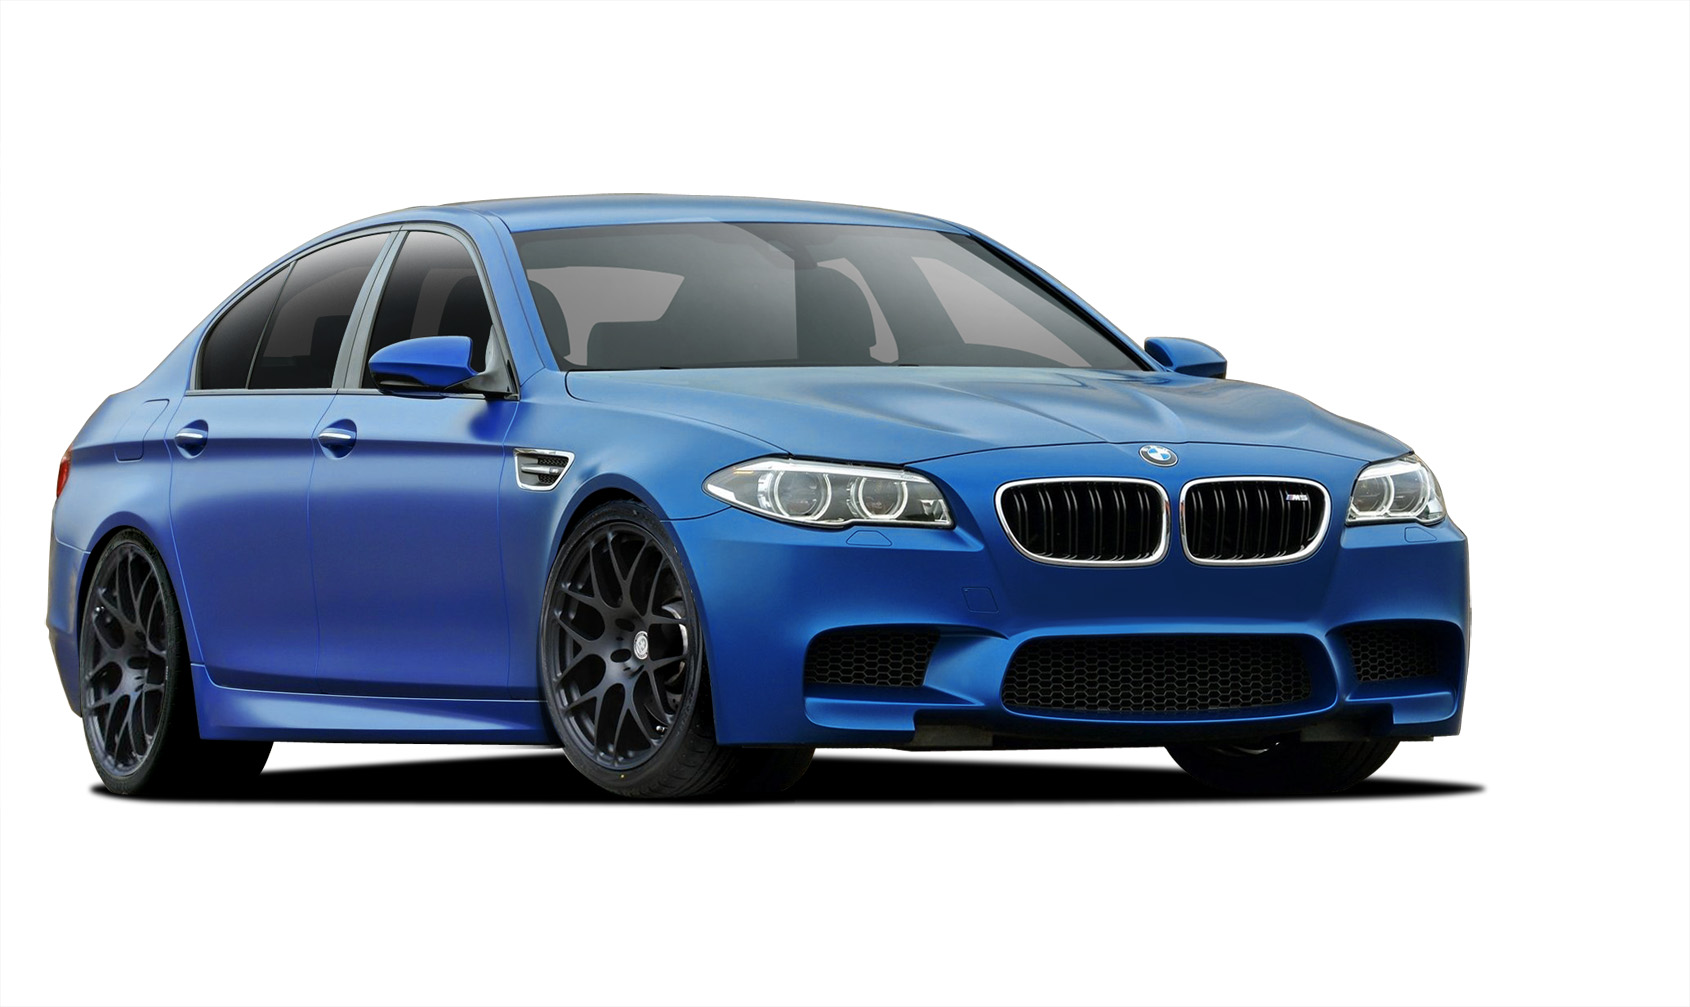 Polypropylene Body Kit Bodykit for 2015 BMW 5 Series 4DR - BMW 5 Series F10 Vaero M5 Look Conversion Kit ( without PDC , with Washer , without Camera